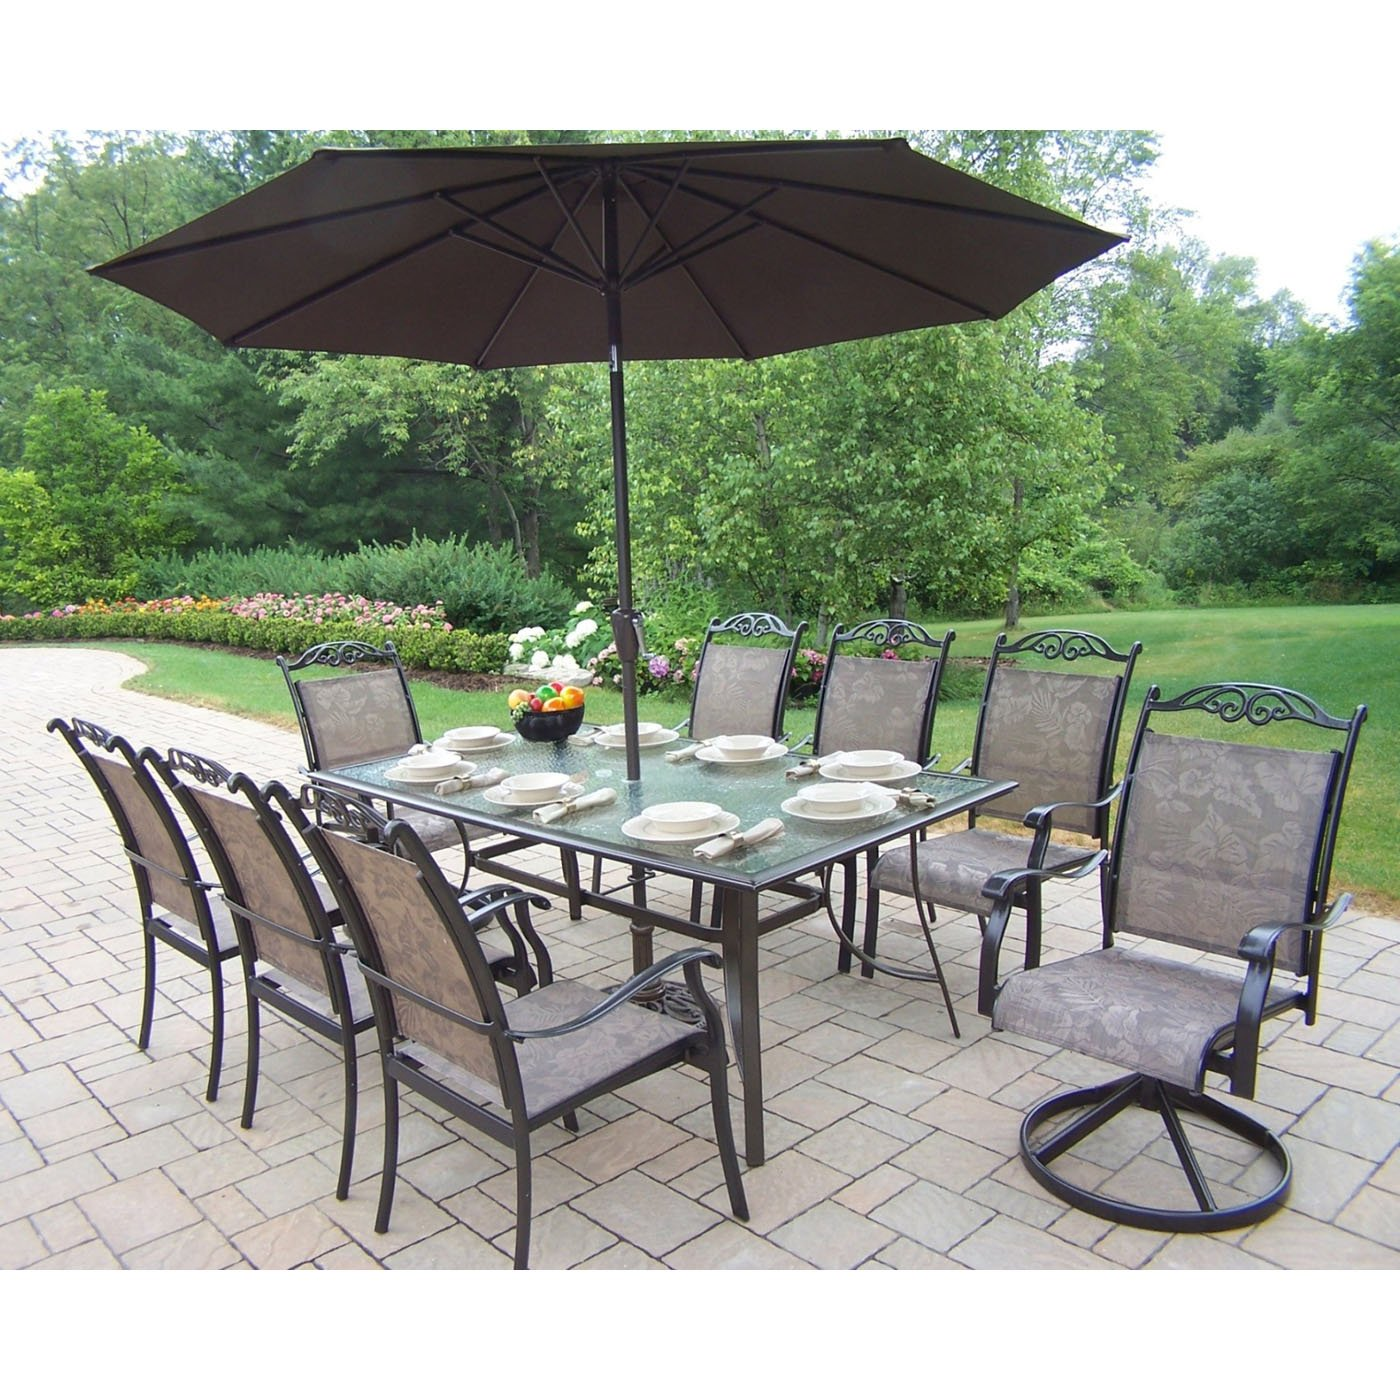 Gentil Outdoor Dining Sets With Umbrella